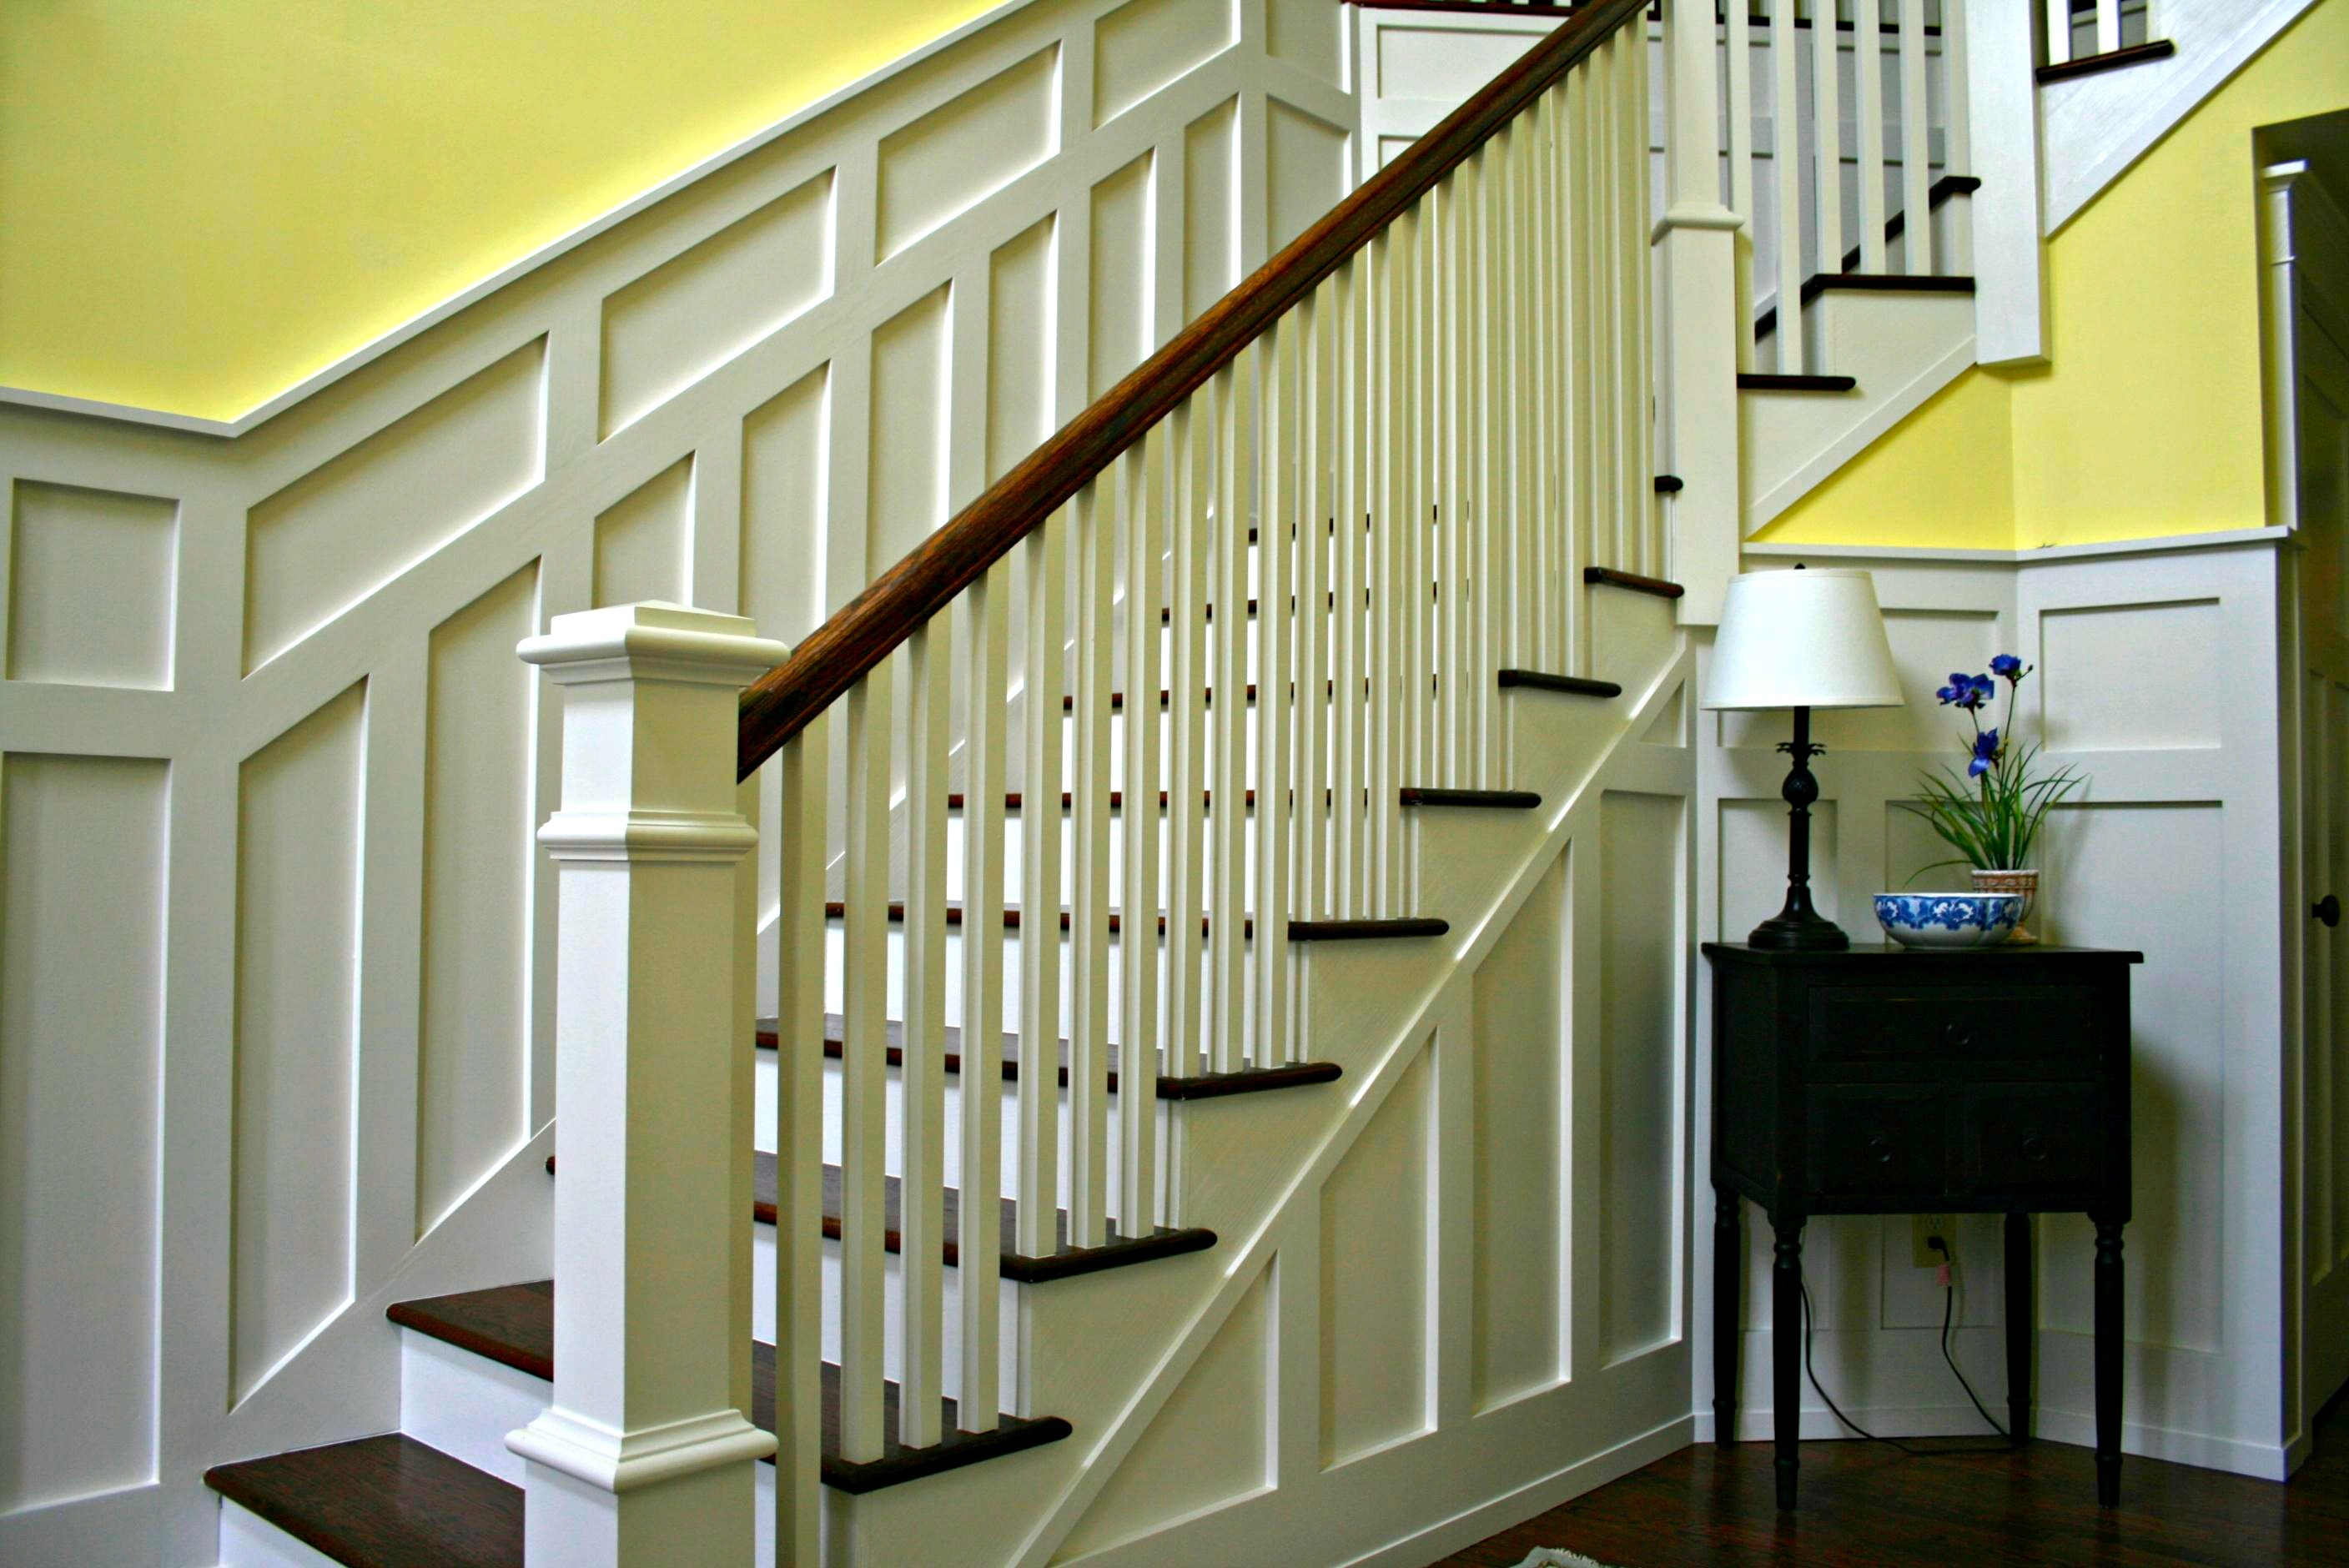 Paneled Staircase Wainscoting Installation By Deacon Home Enhancement